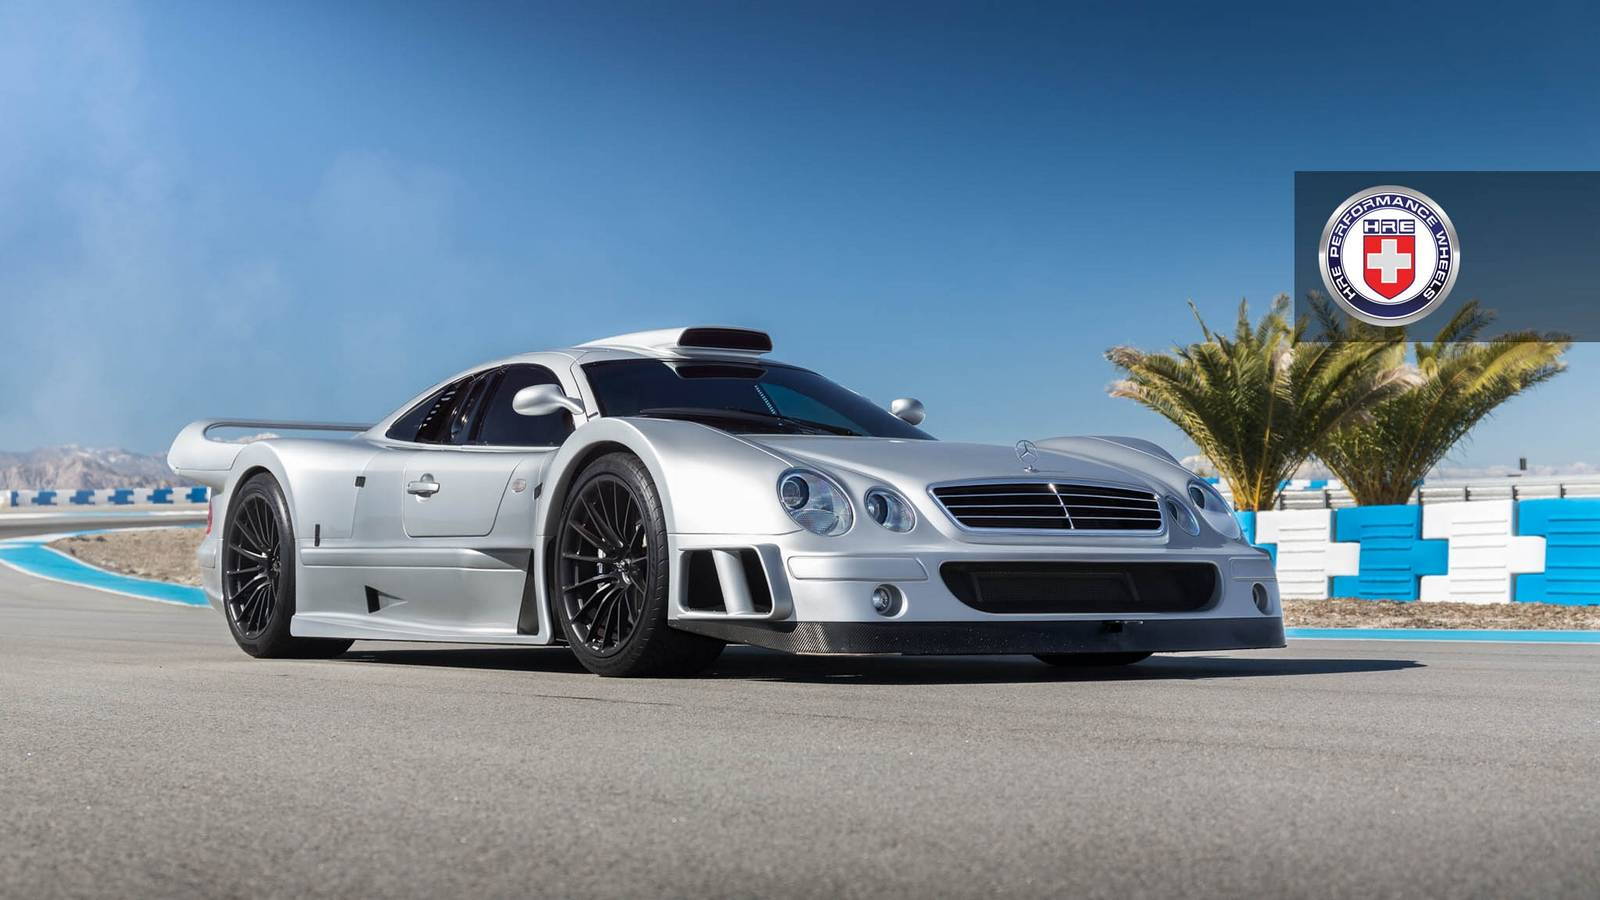 ... Mercedes Benz CLK GTR With Satin Black HRE Wheels. Wheels ...